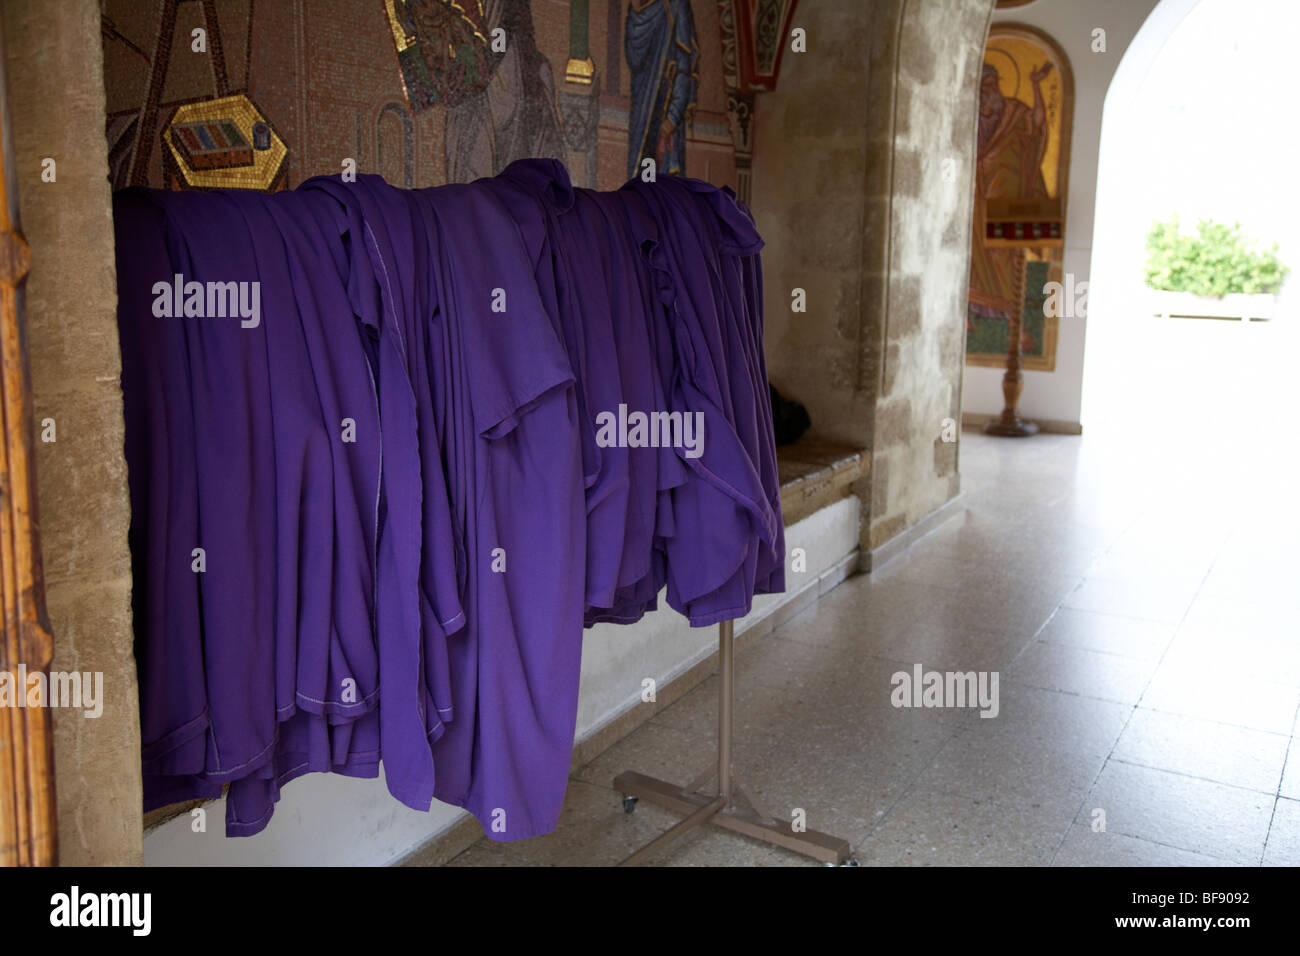 purple robes for visitors to cover up at the entrance of the Holy Royal and Stavropegiac Monastery of the Virgin - Stock Image